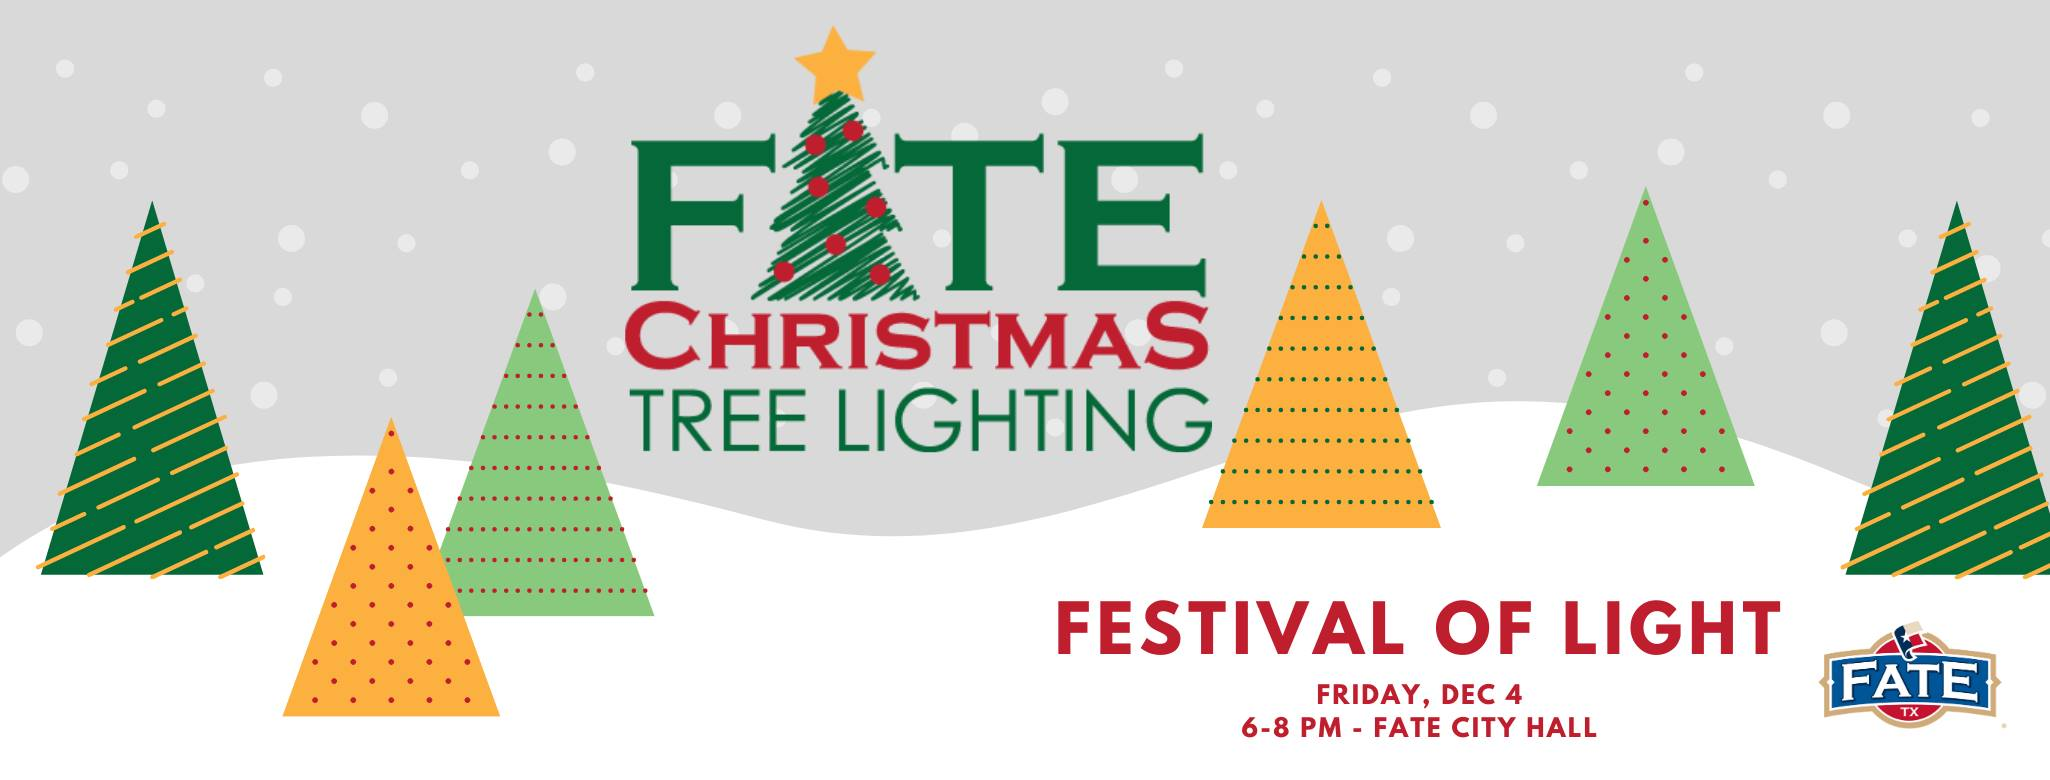 Fate to present Festival of Light, Santa, fireworks